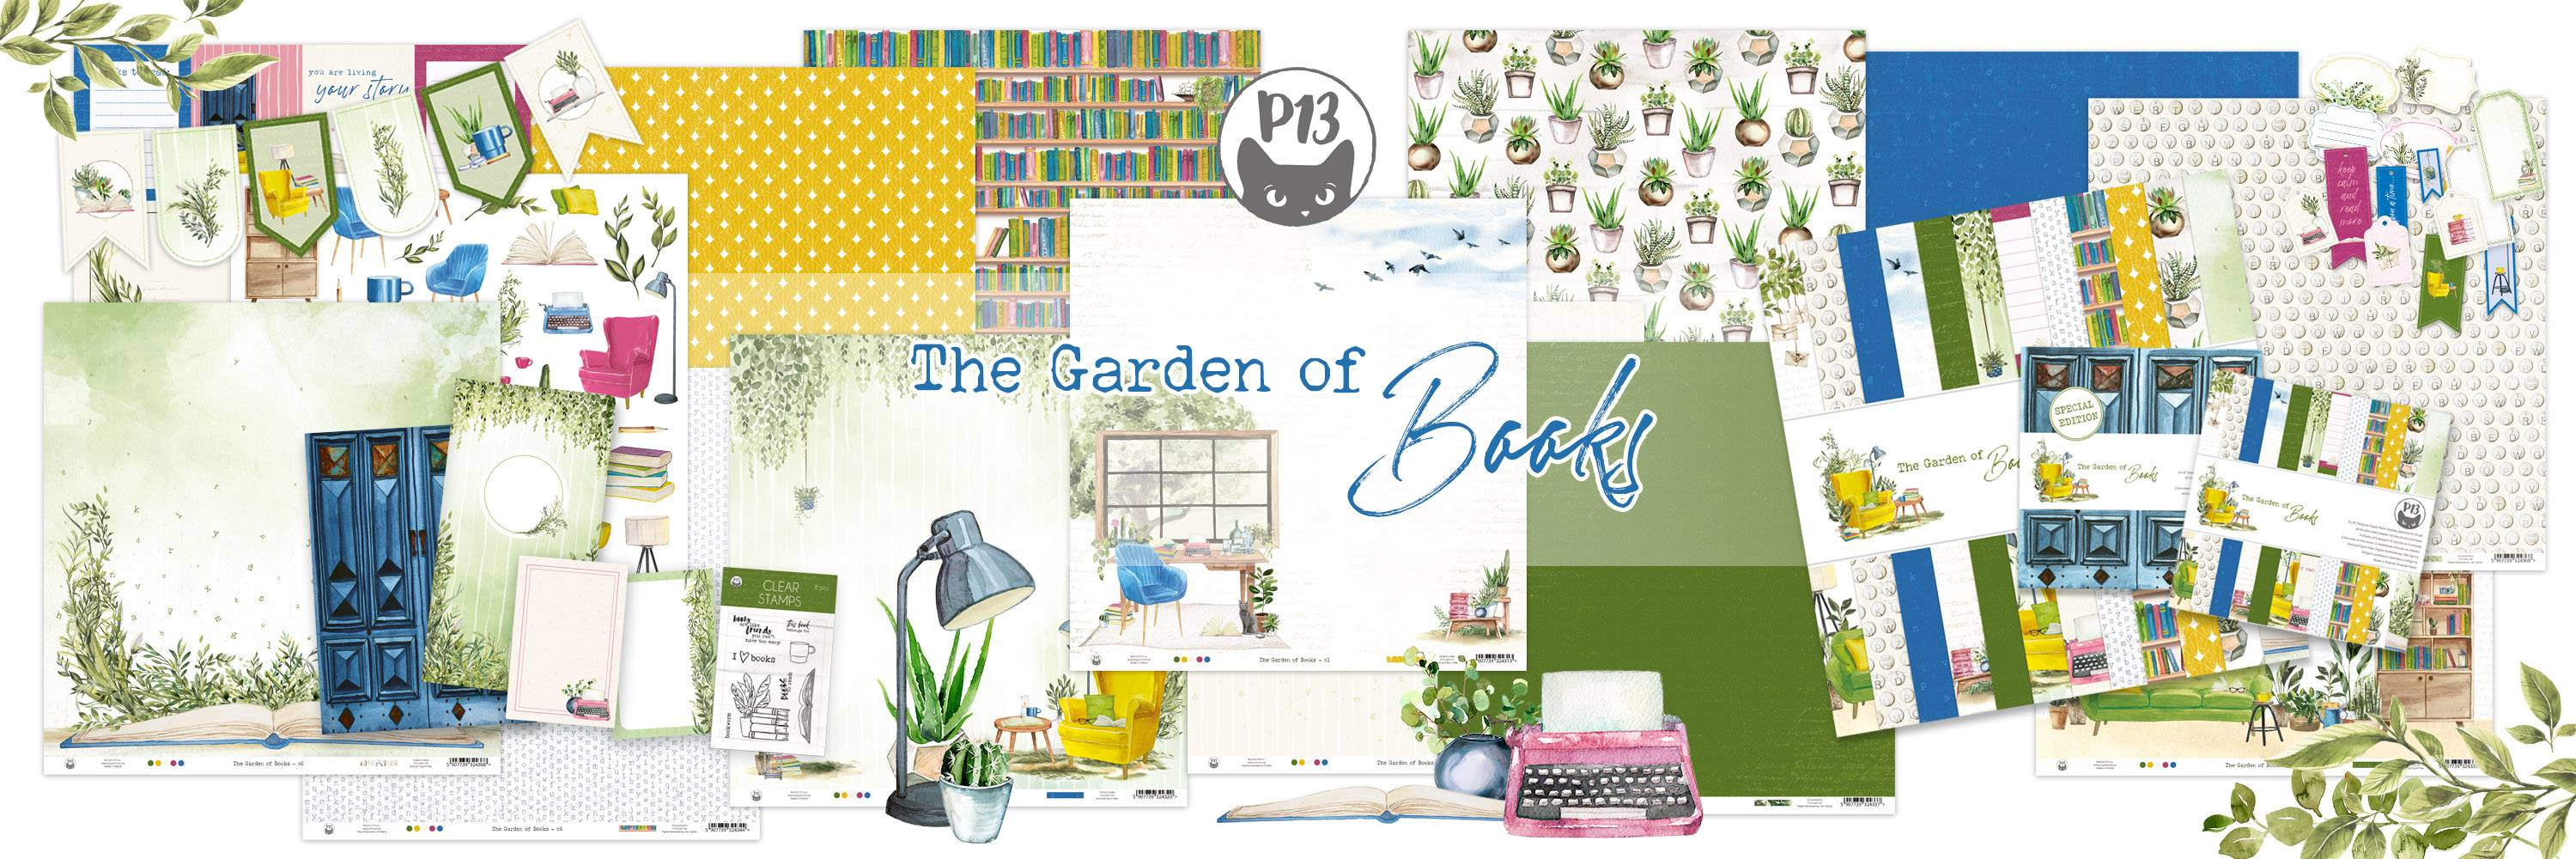 https://store.p13.com.pl/pl/90-nowosc-the-garden-of-books